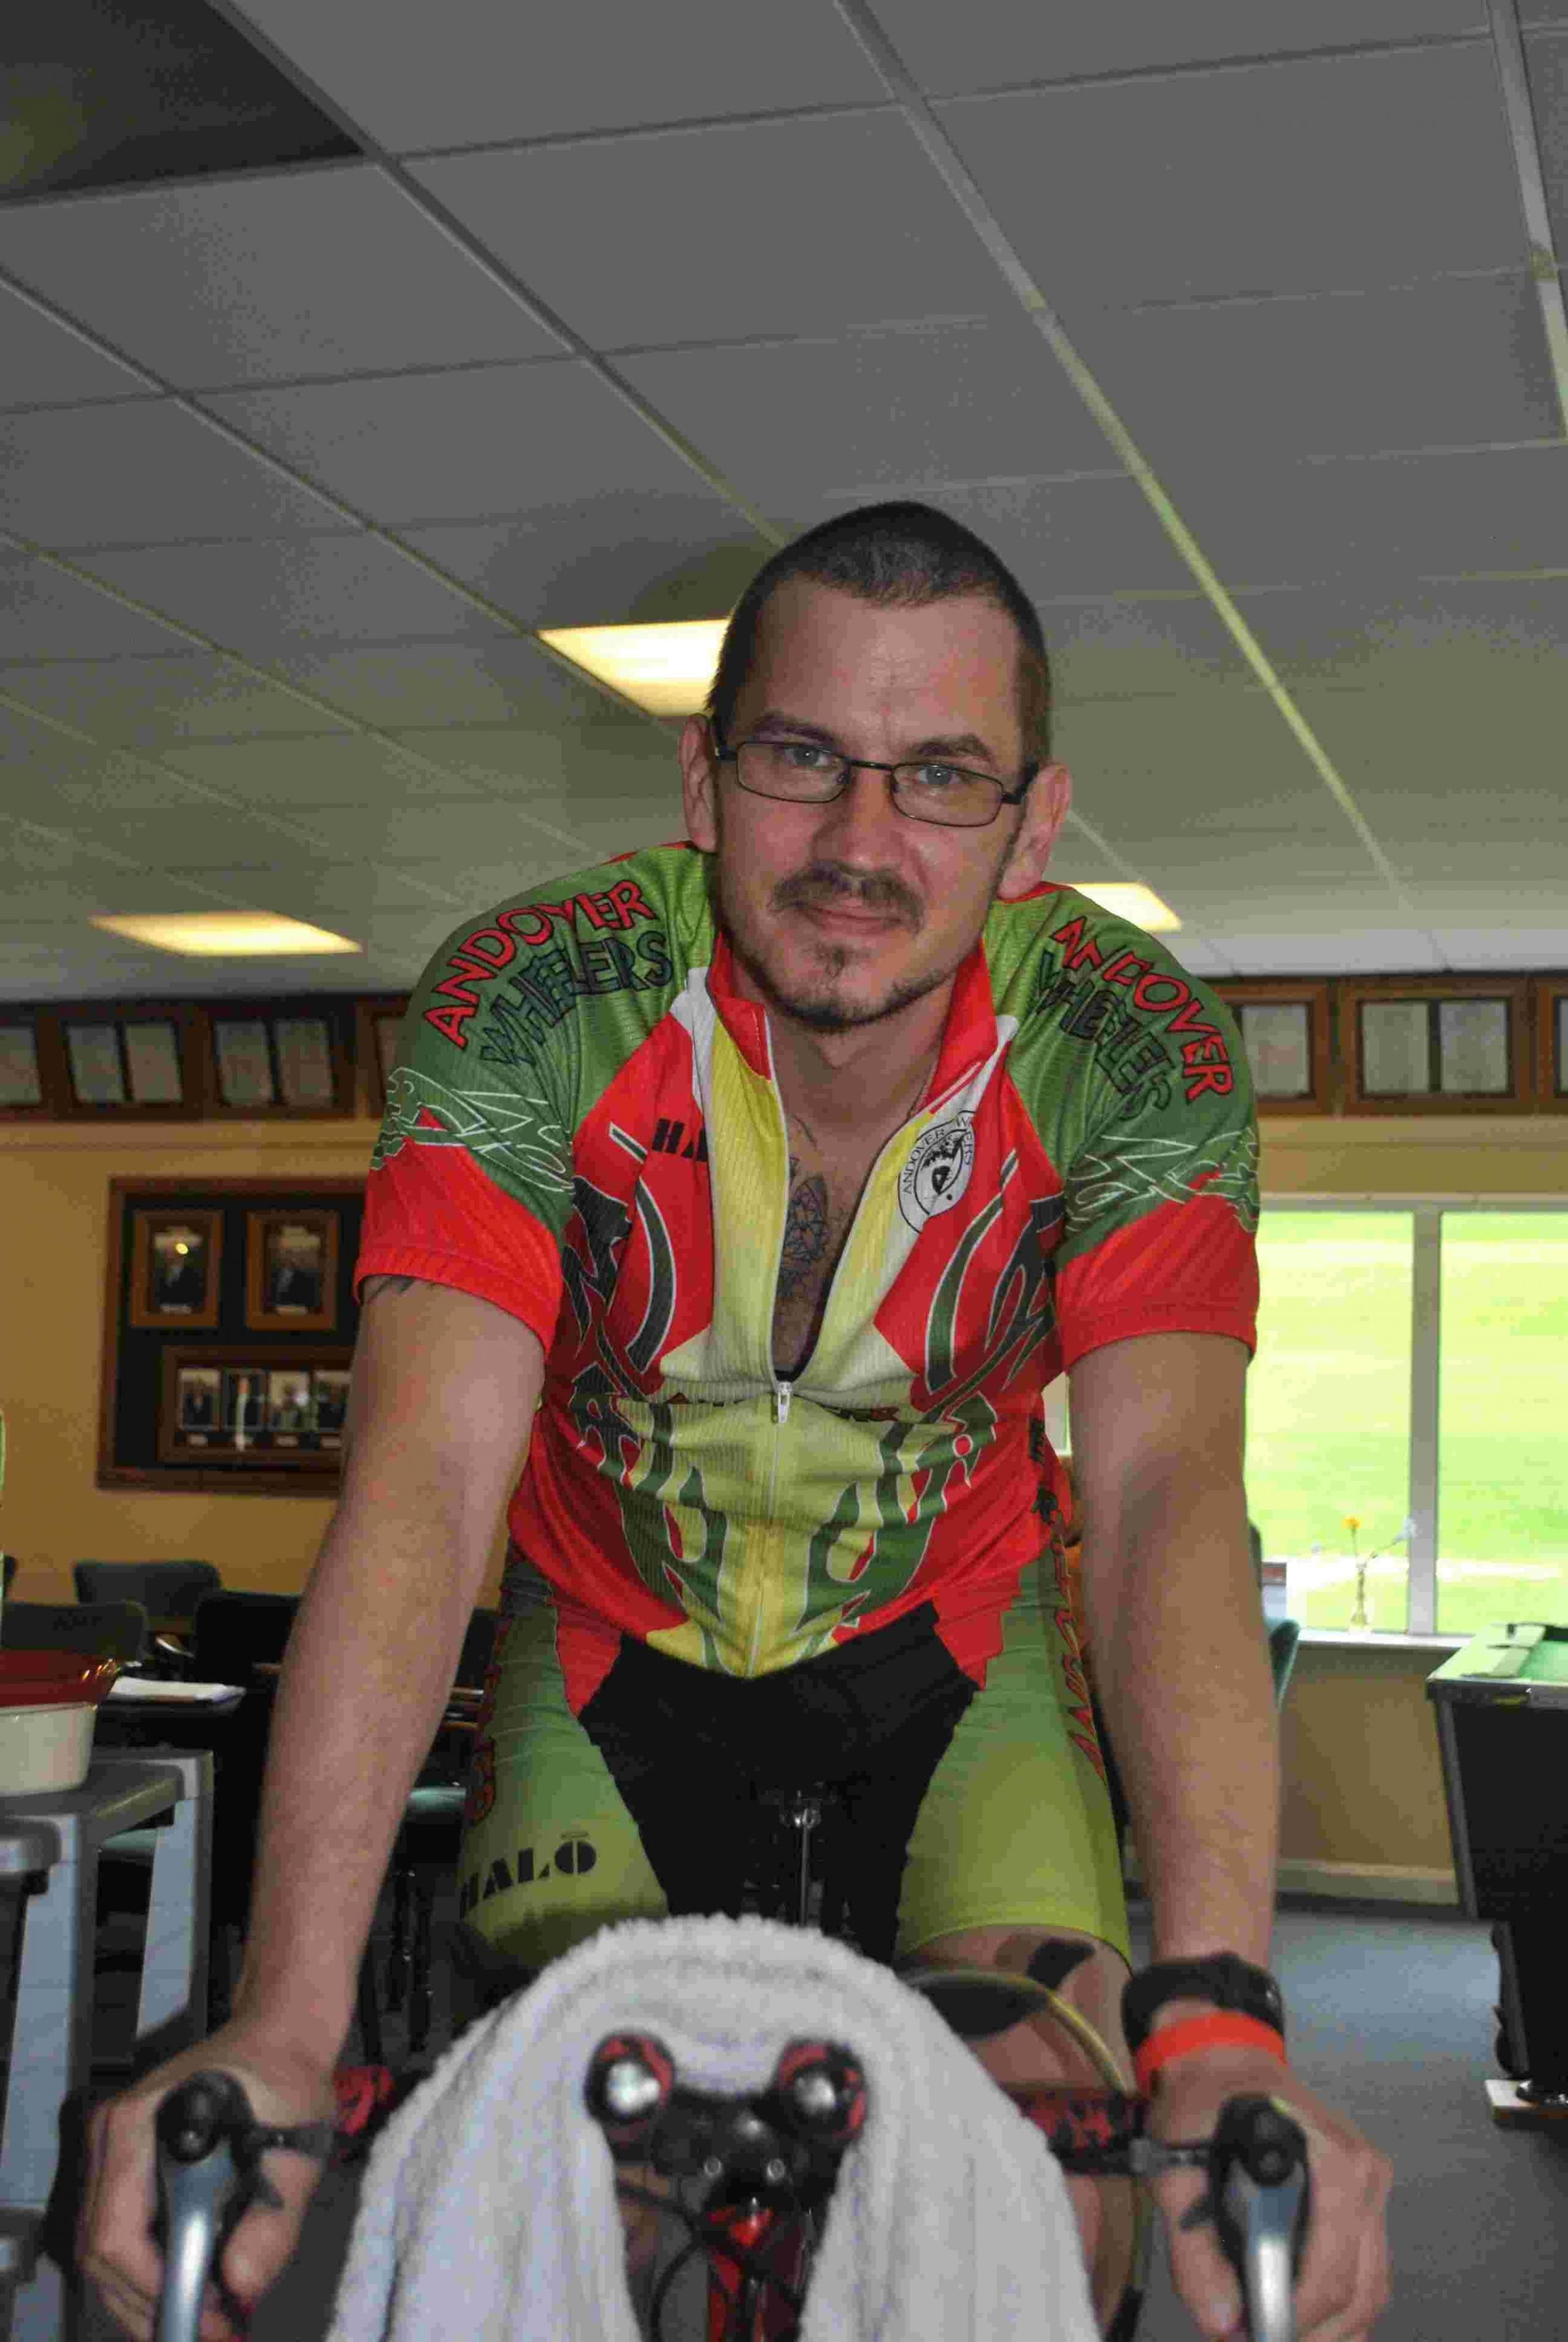 Andover man's 24 hour cycle for Naomi House